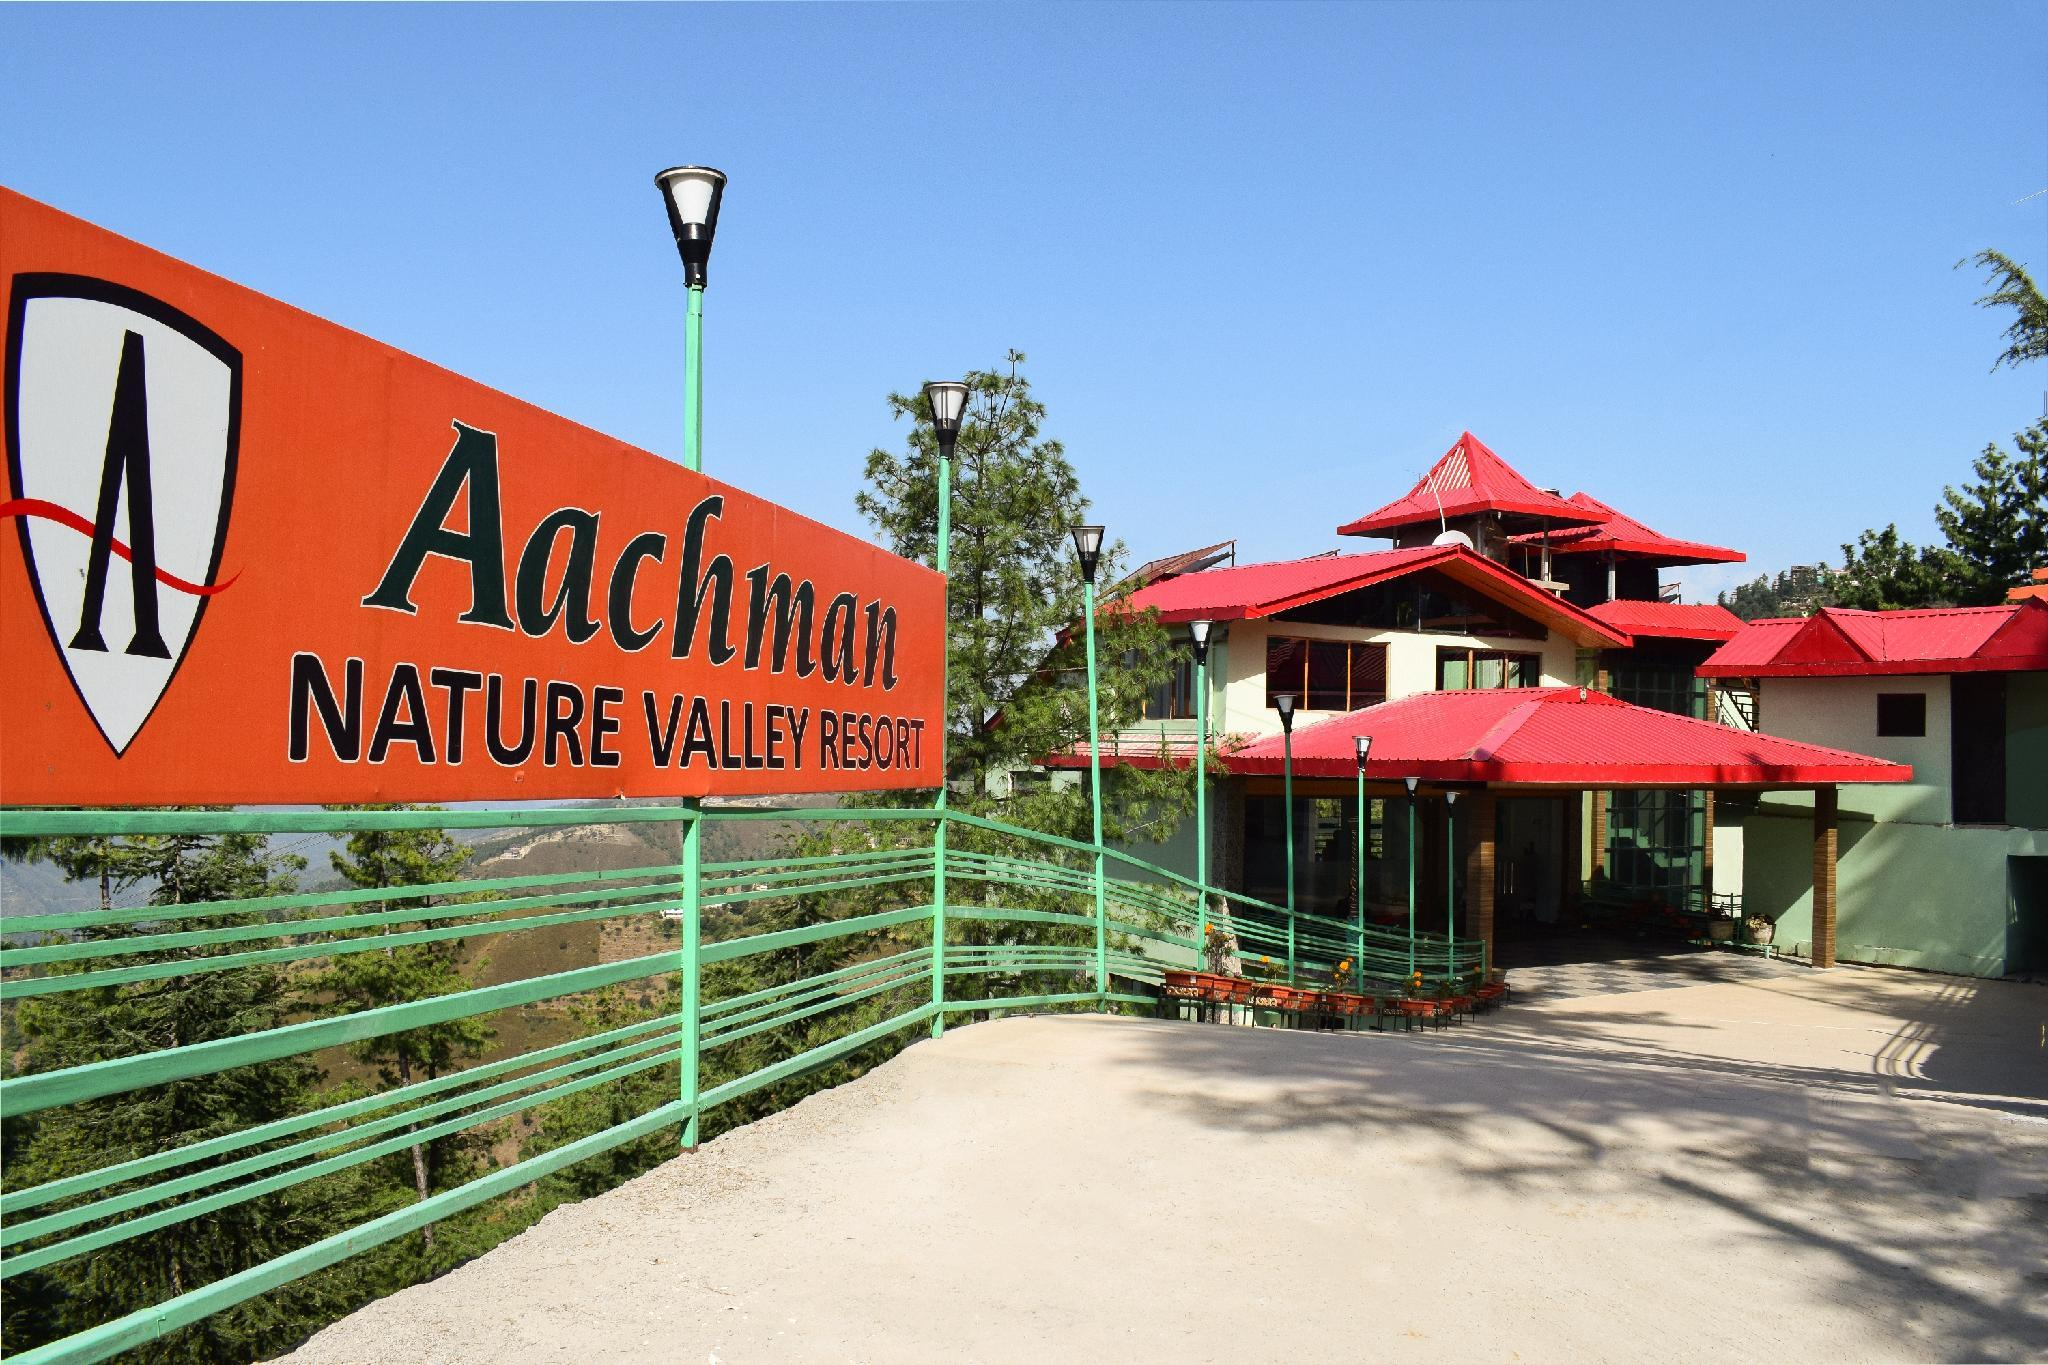 One Earth Aachman Nature Valley Resort